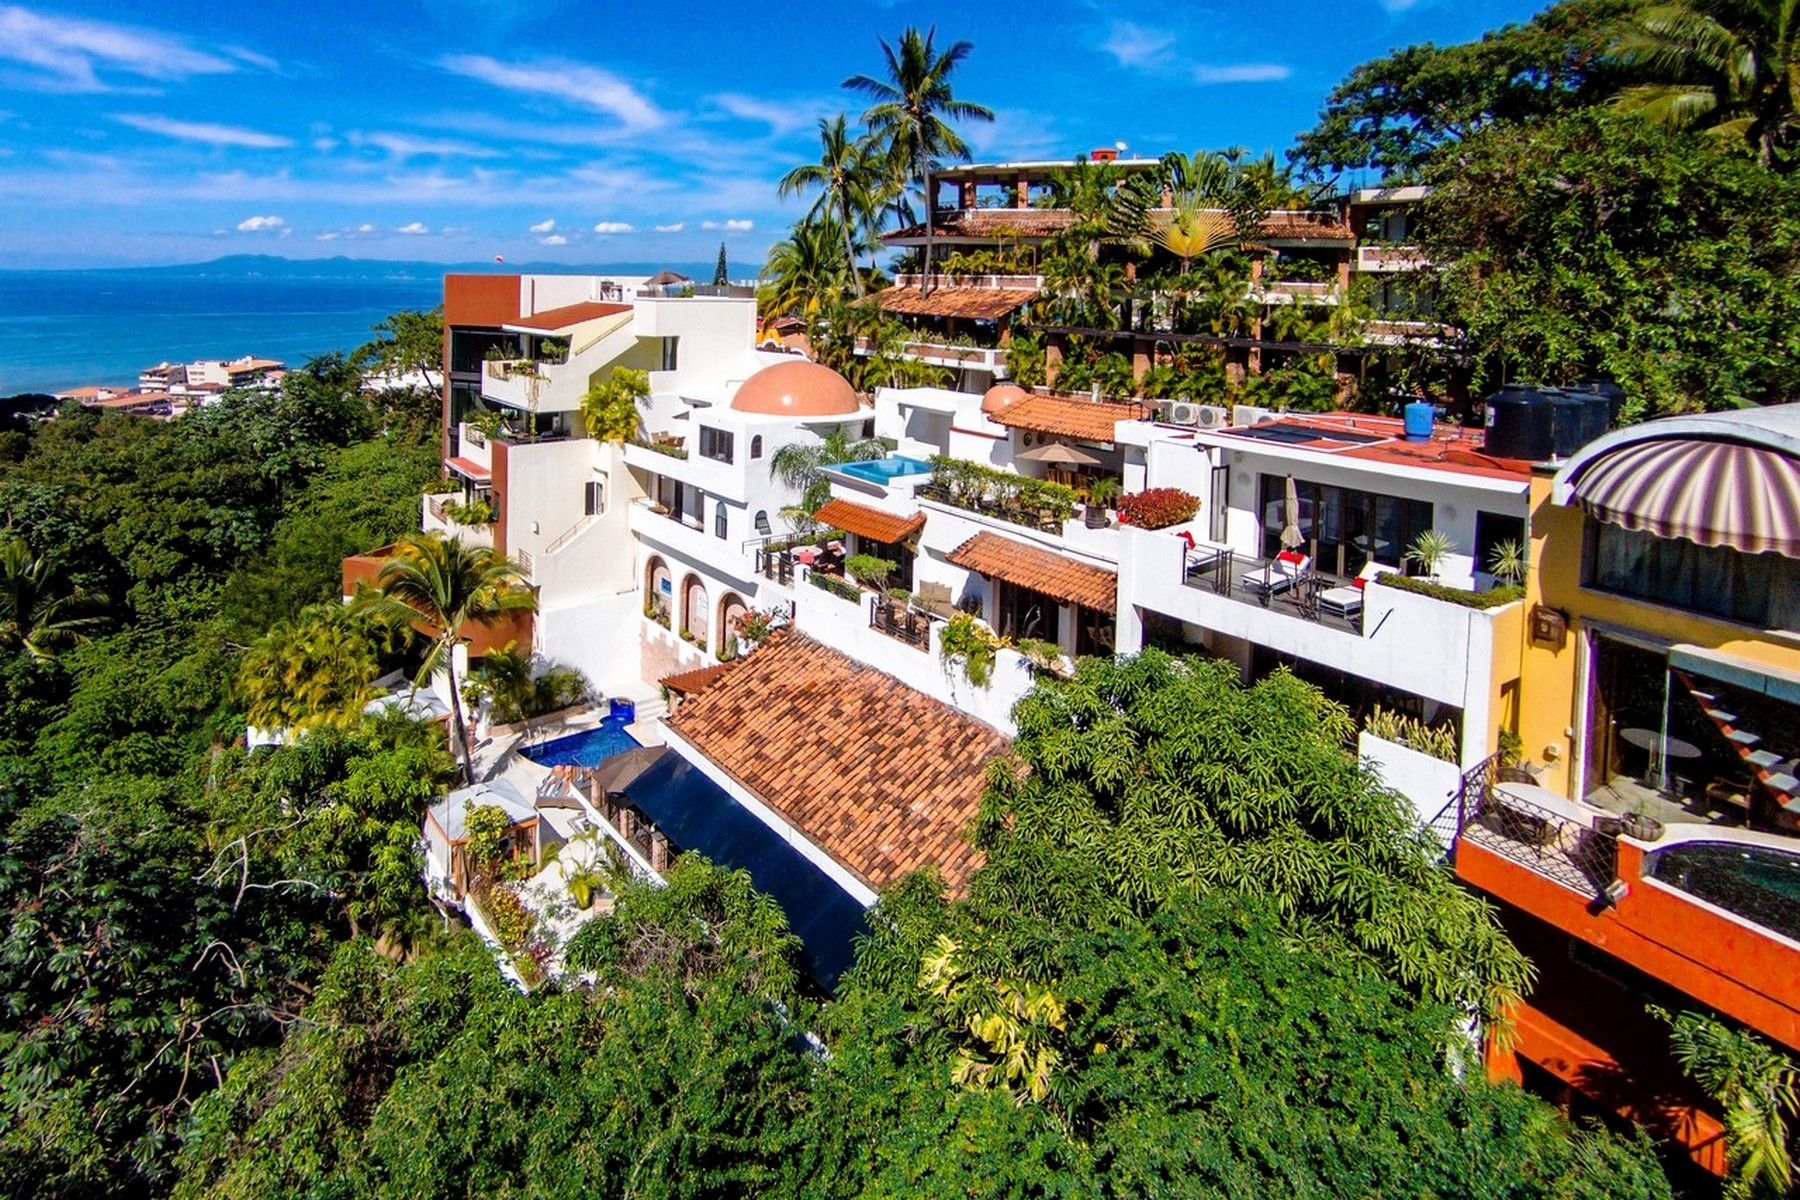 Single Family Home for Sale at Boutique hotel in Las Amapas Puerto Vallarta, Jalisco, 48399 Mexico